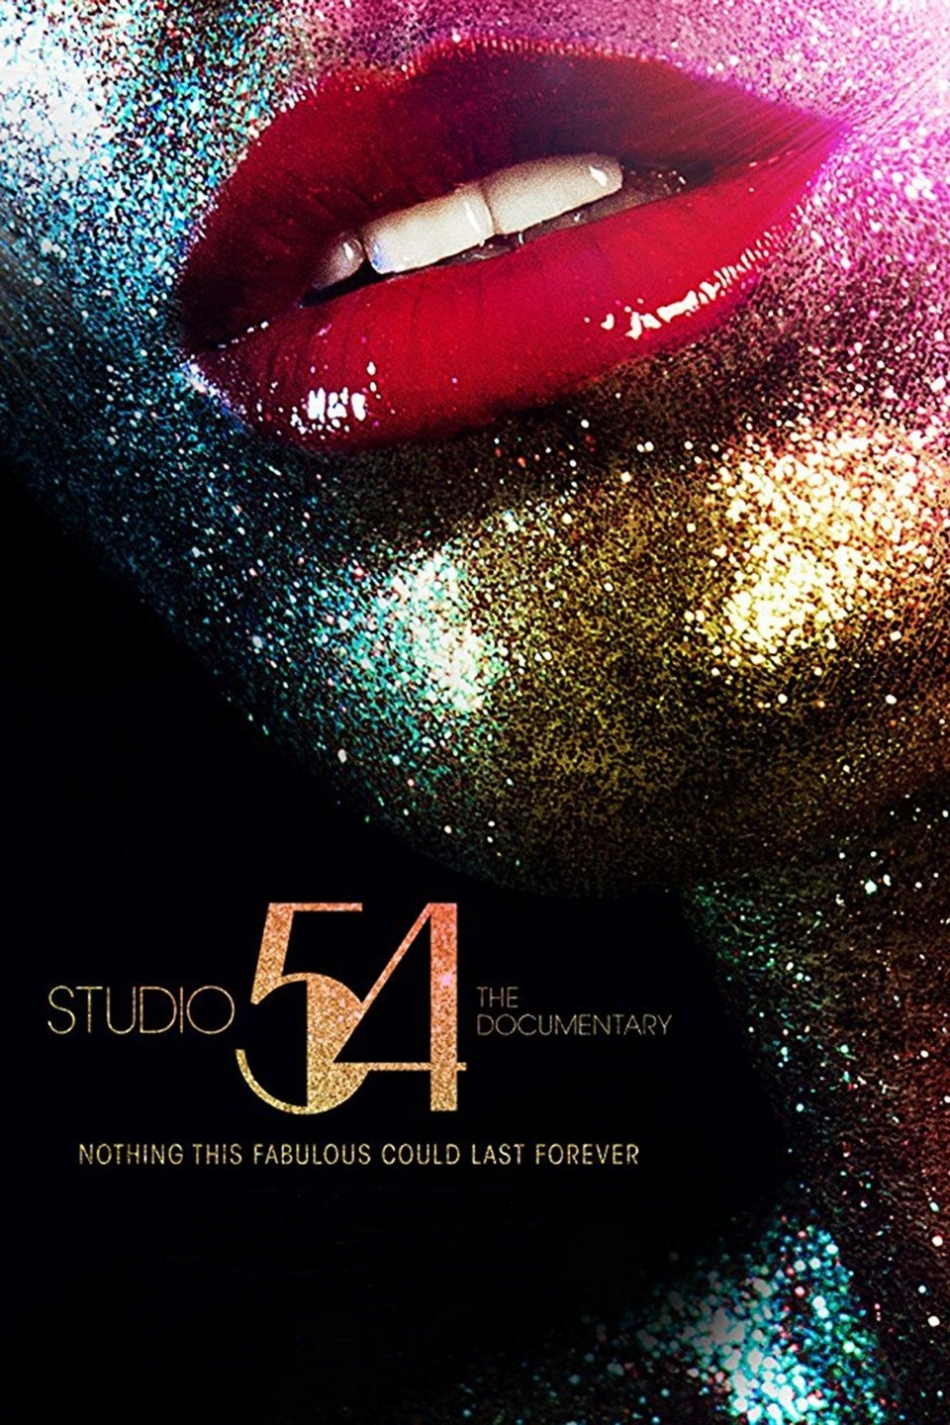 Studio 54 aGLIFF Film Review